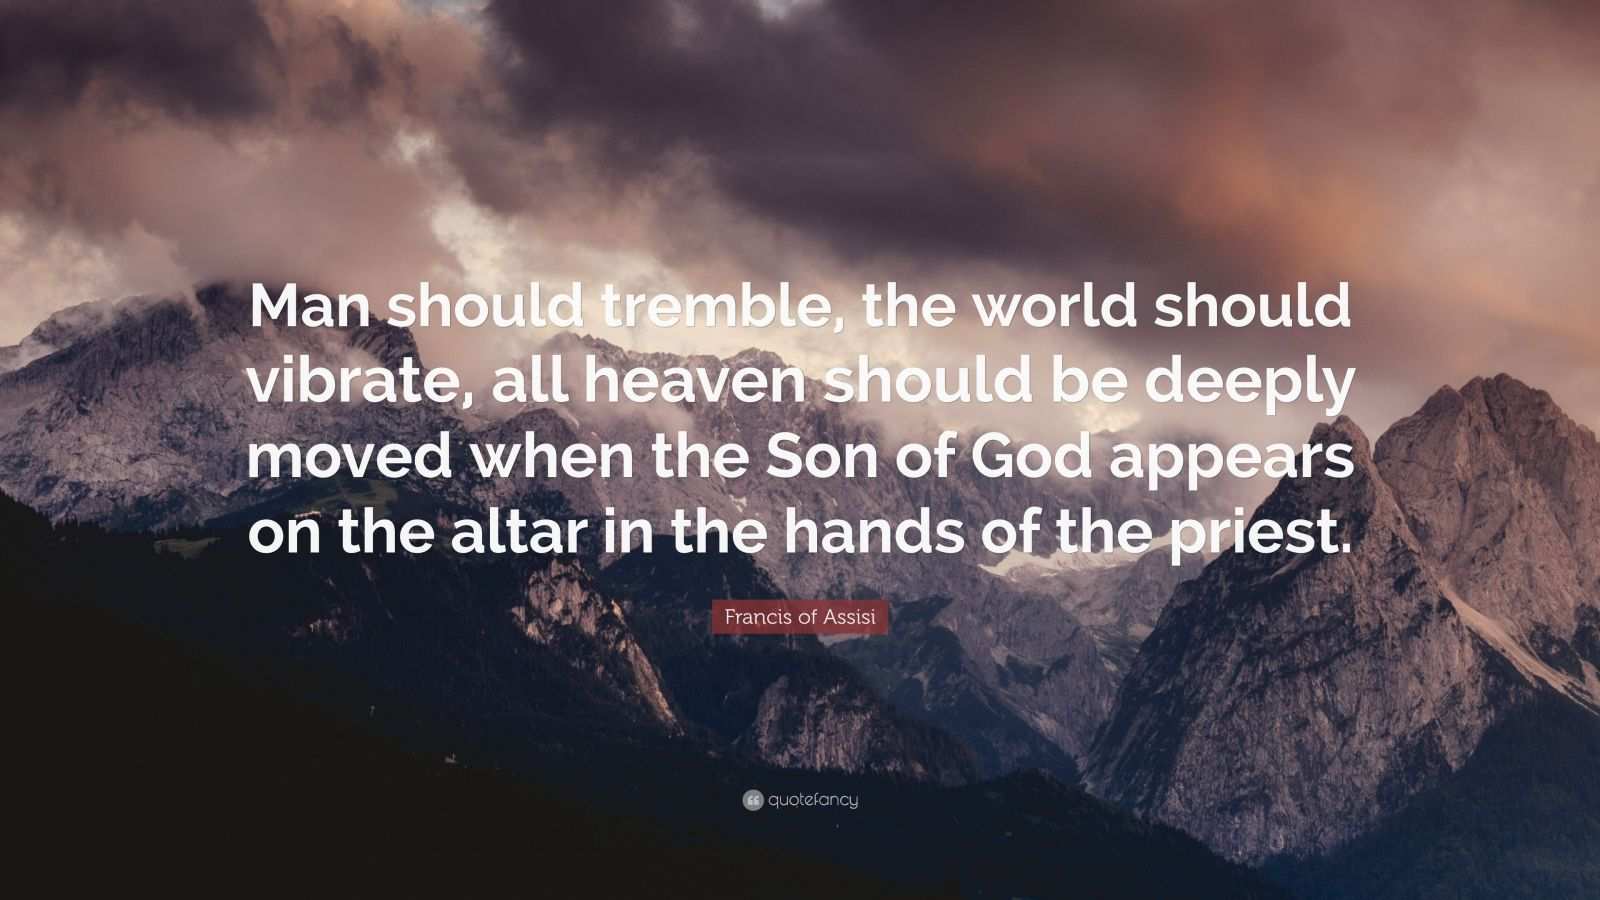 """Francis of Assisi Quote: """"Man should tremble, the world should vibrate, all heaven should be deeply moved when the Son of God appears on the altar in the hands of the priest."""""""